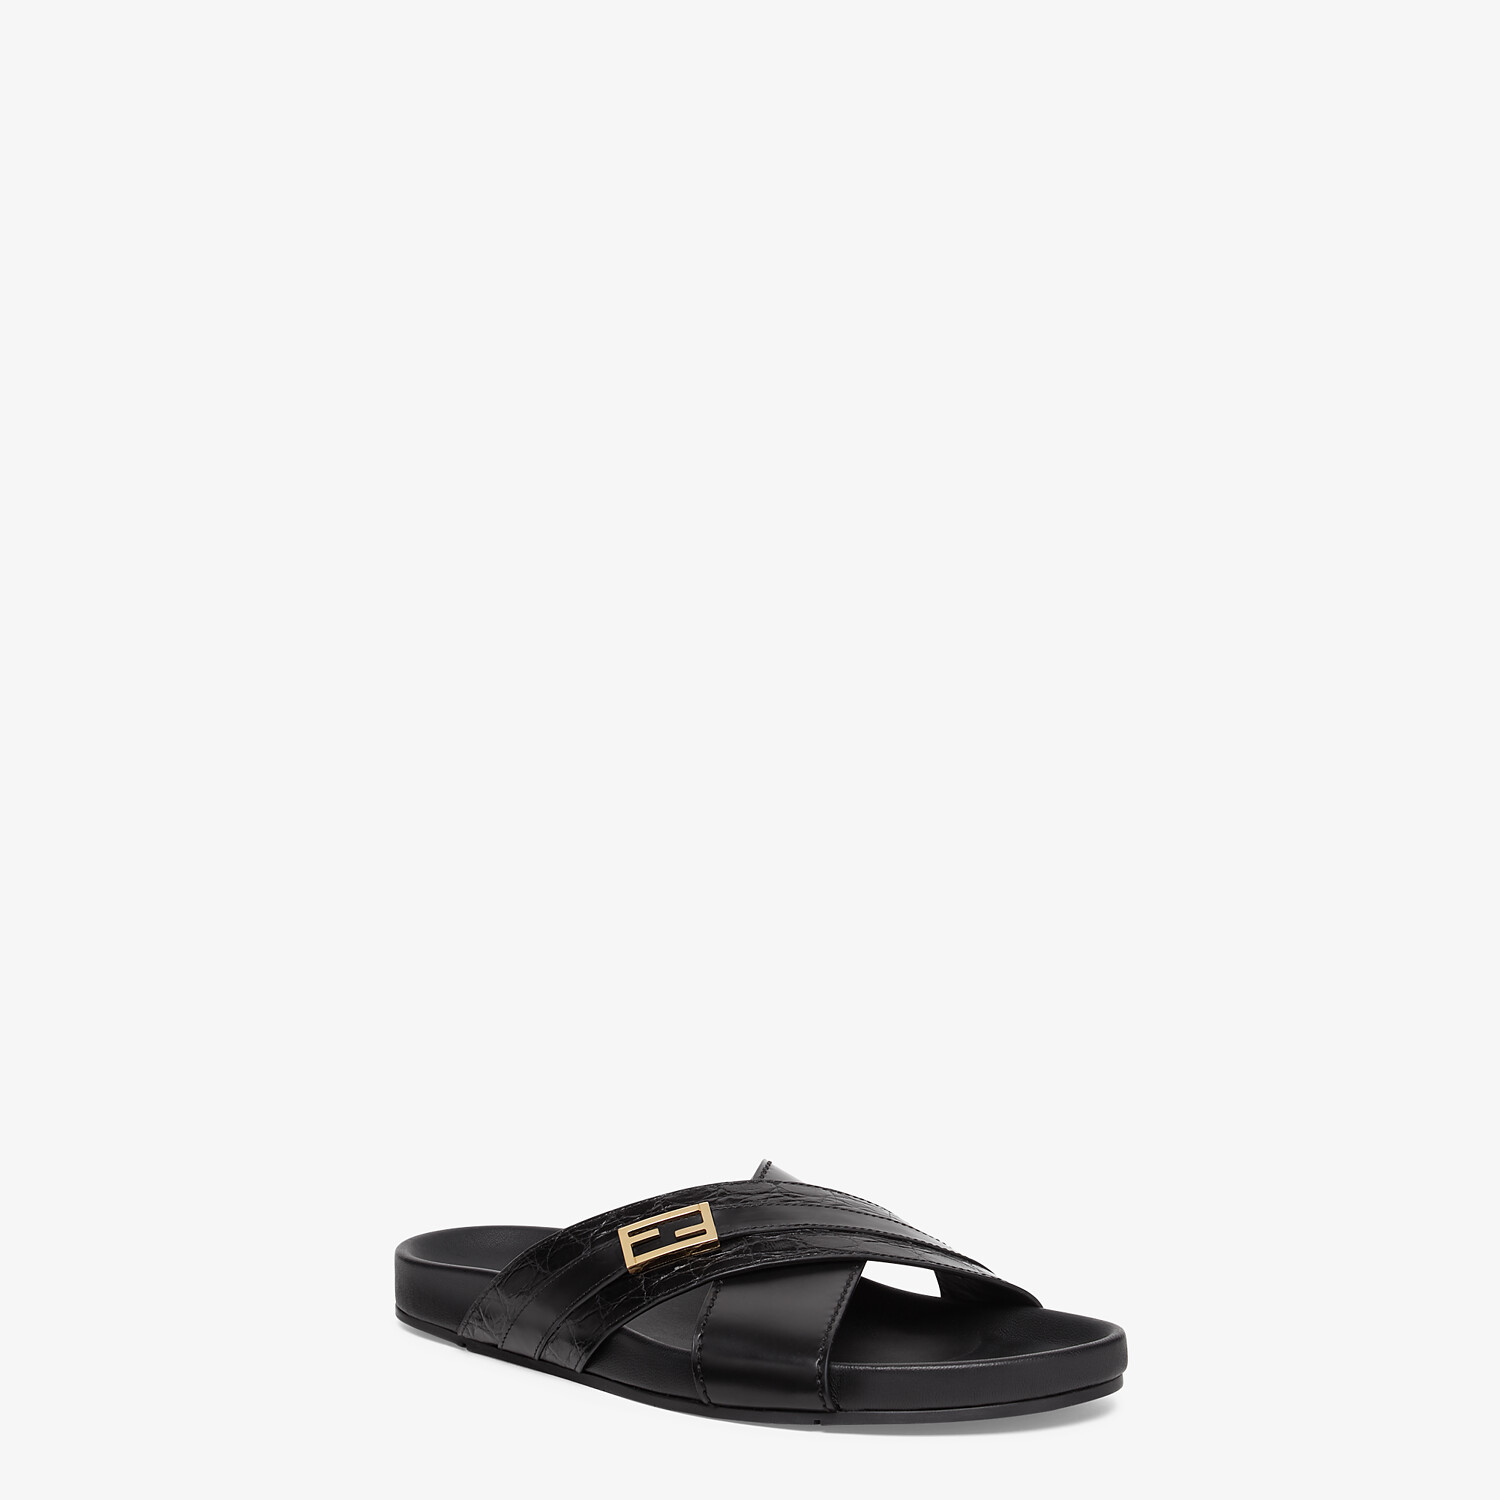 FENDI SANDALS - Black caiman and leather fussbetts - view 2 detail